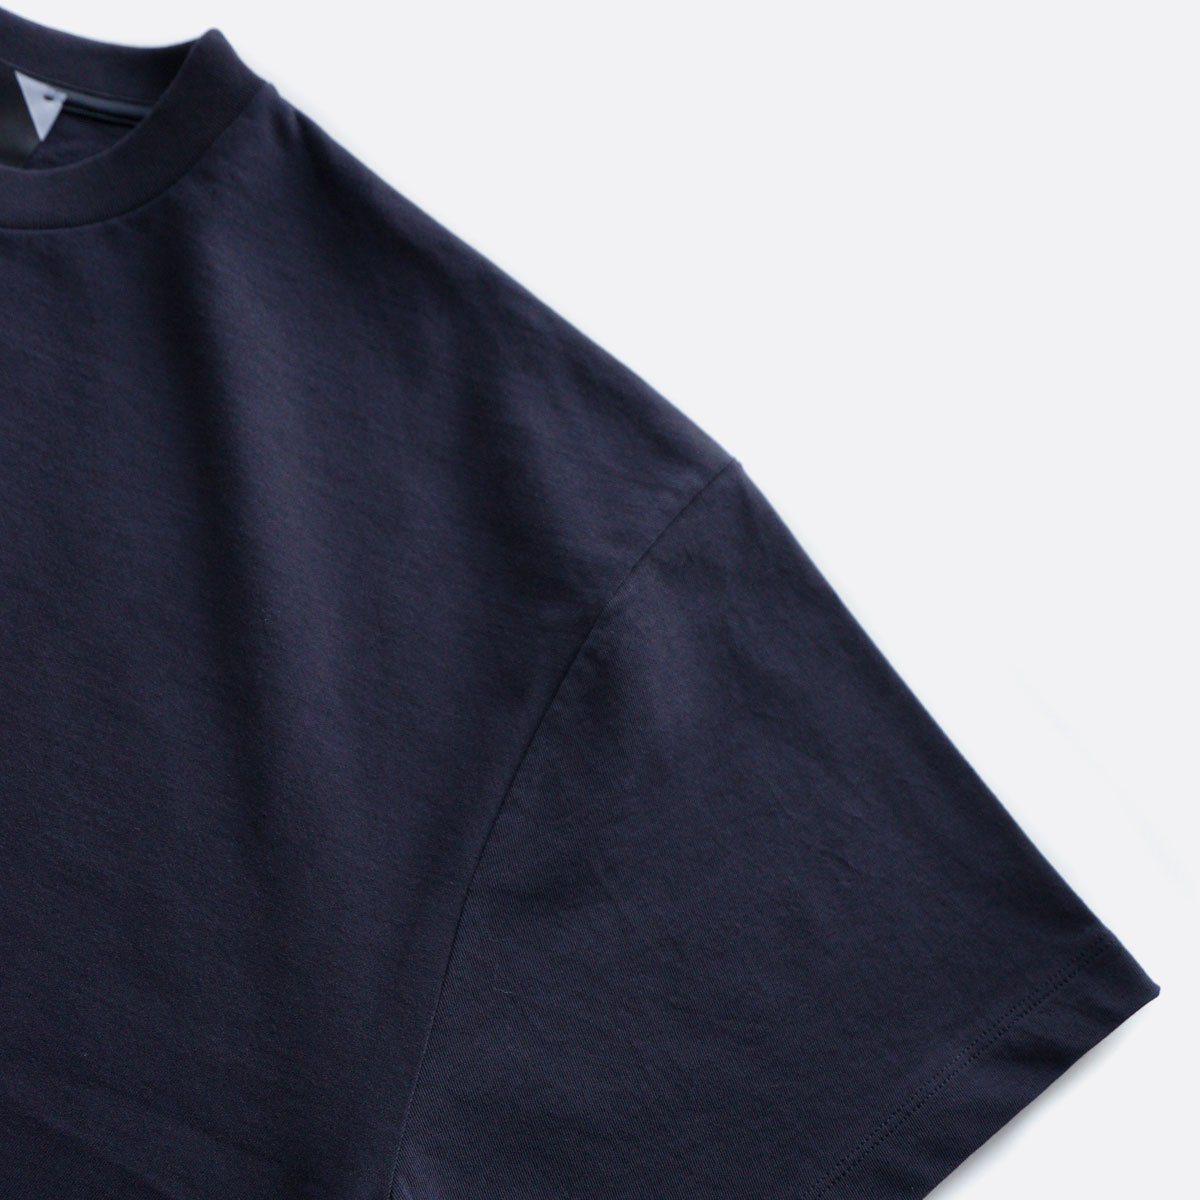 ATON FRESCA PLATE OVERSIZED T-SHIRT (NAVY)4